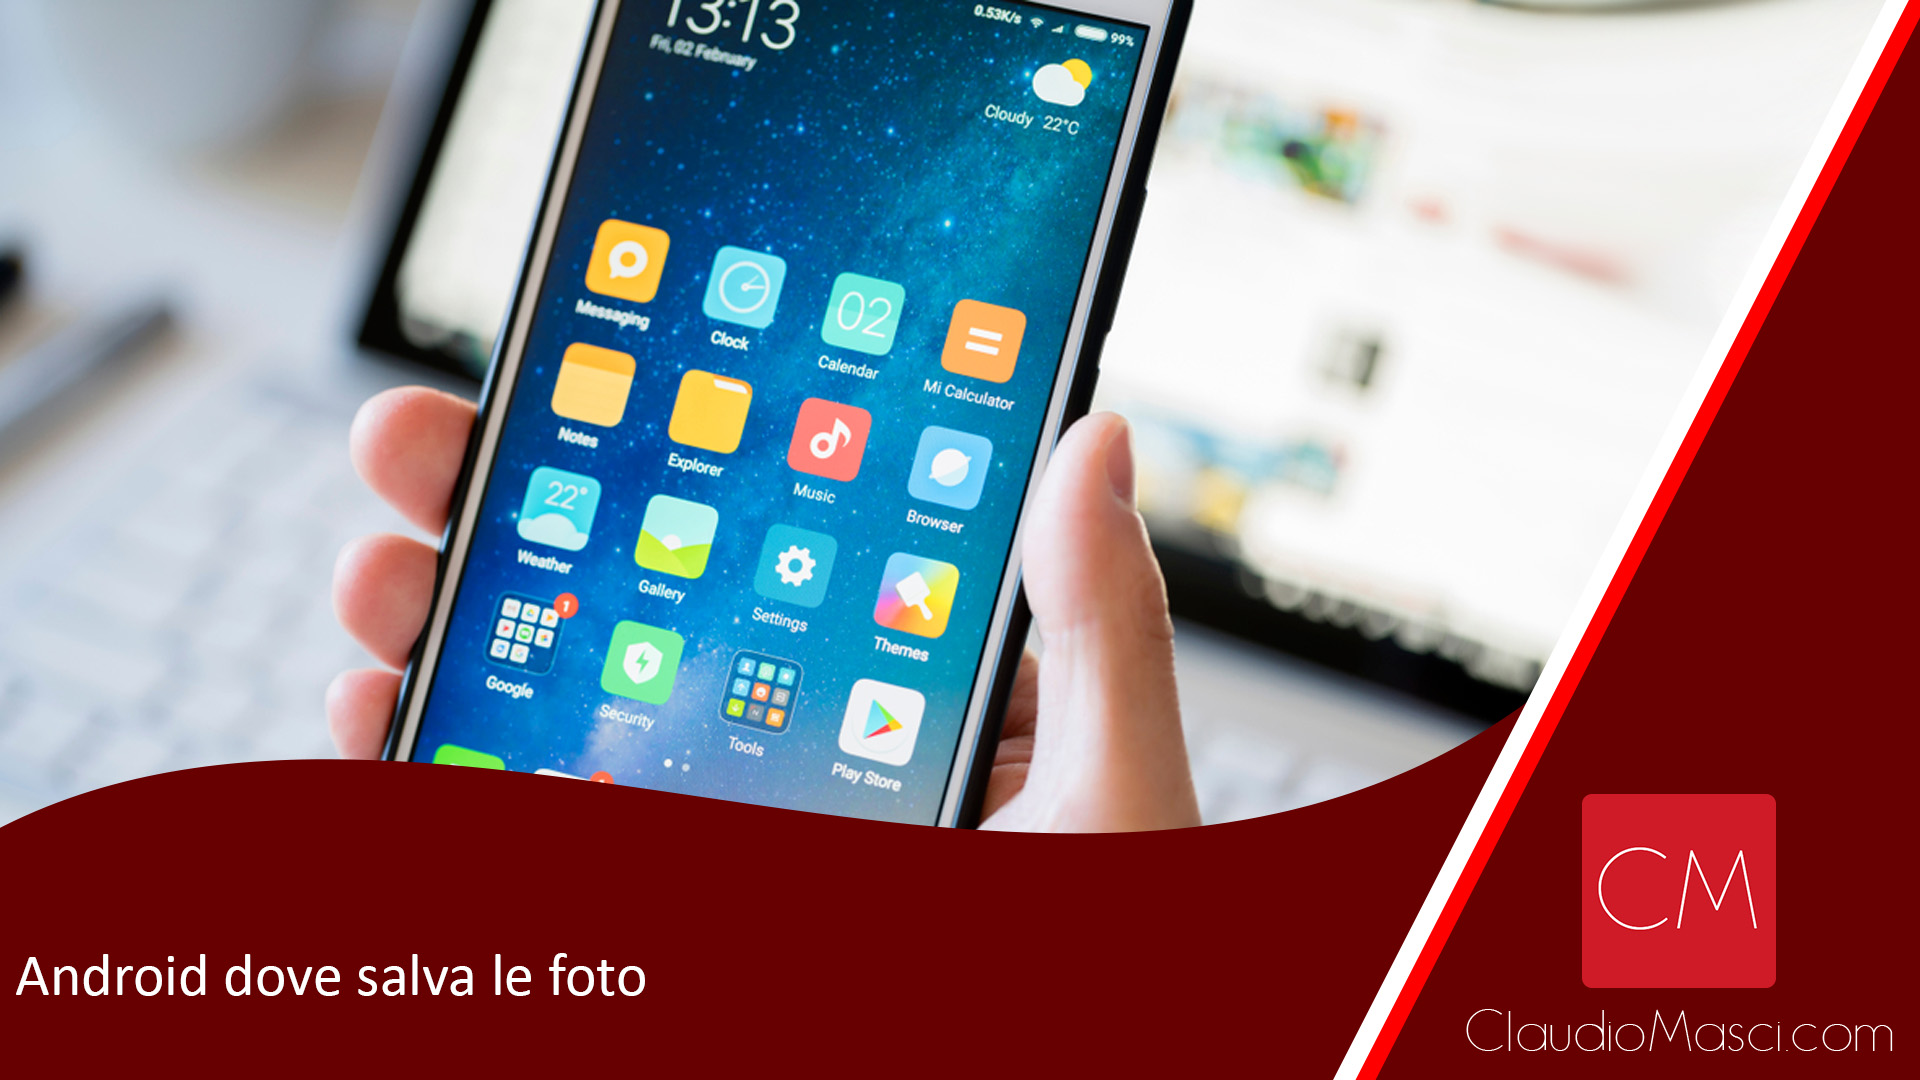 Android dove salva le foto